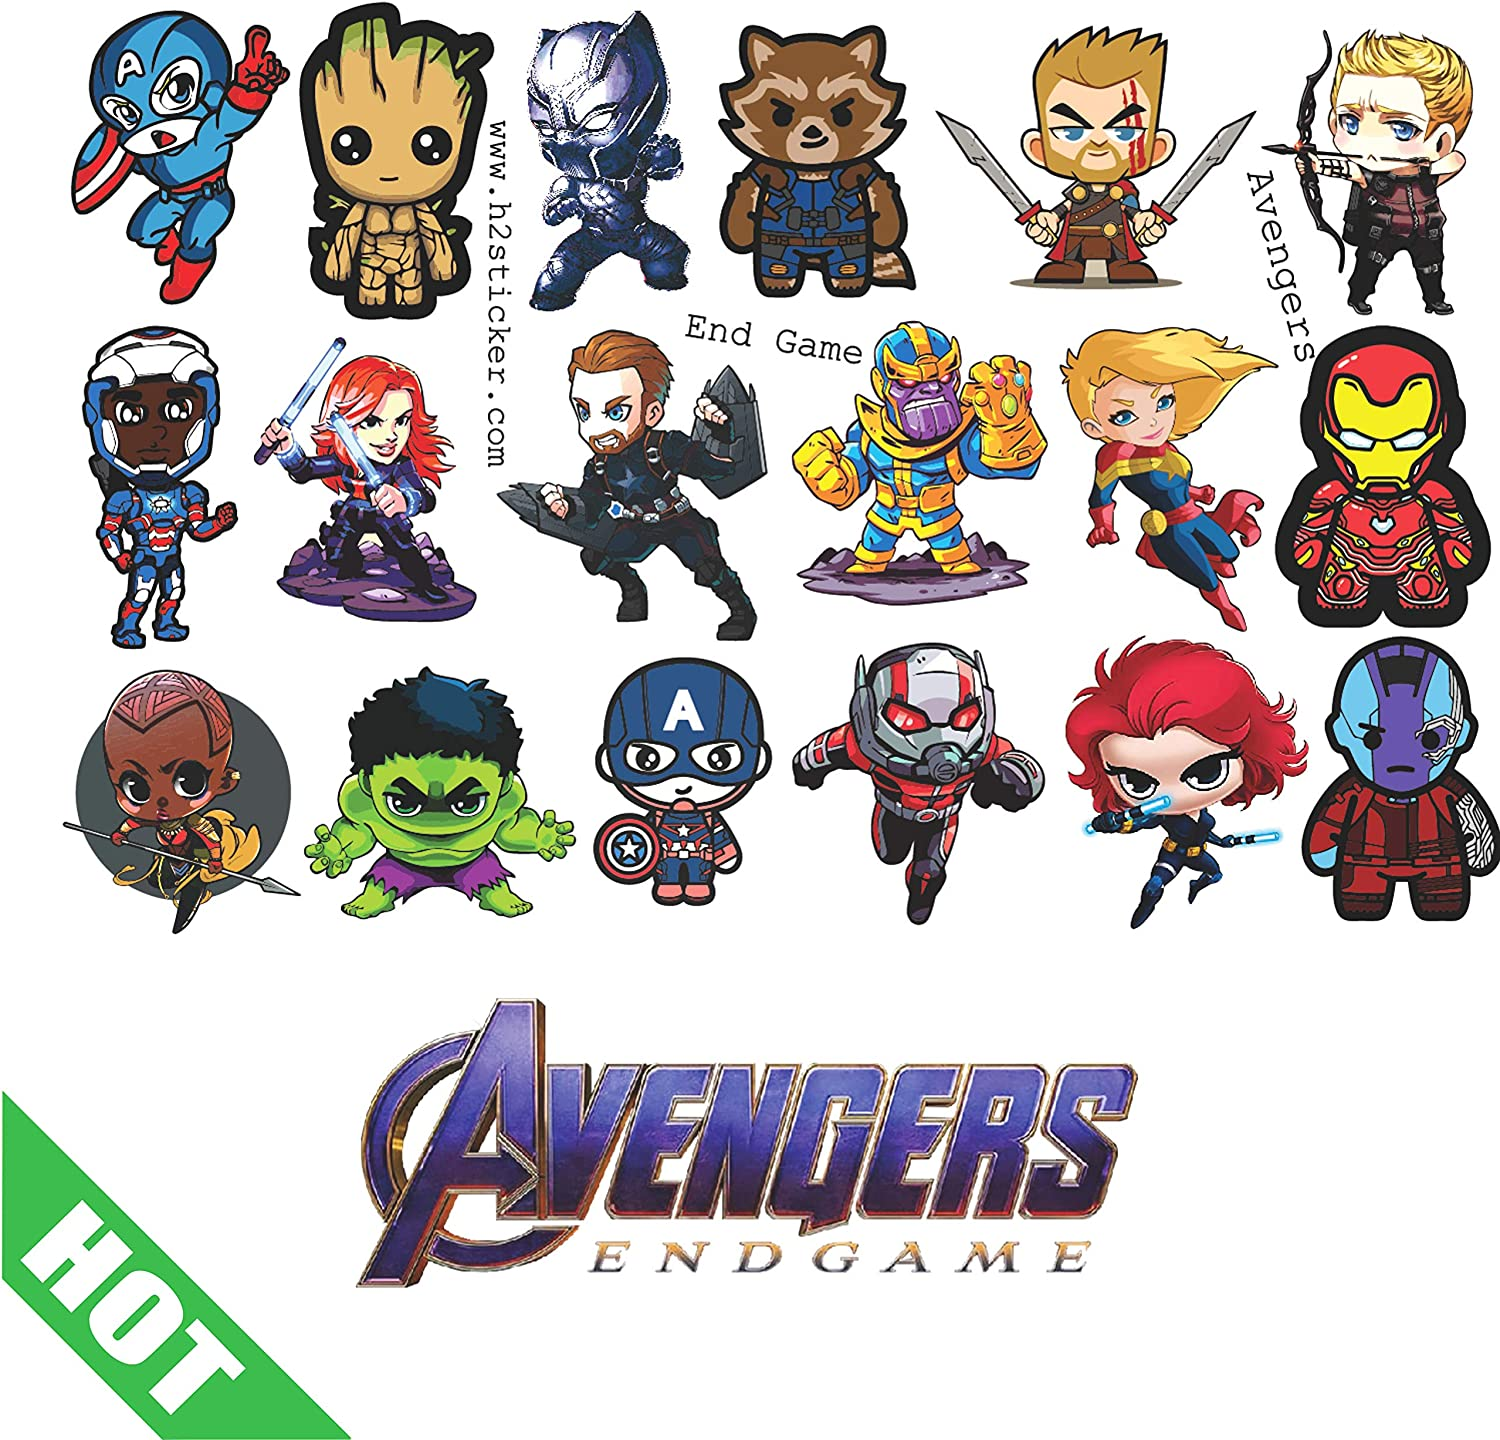 Avengers Sticker, Waterproof Vinyl, Chibi Funny Decal of Endgame, Marvel: Thanos, Ironman, Captain America, Thor. Sticker Scrapbooking Luggage Laptop Skateboard Phone Guitar Motorcycle. by H2 Studi